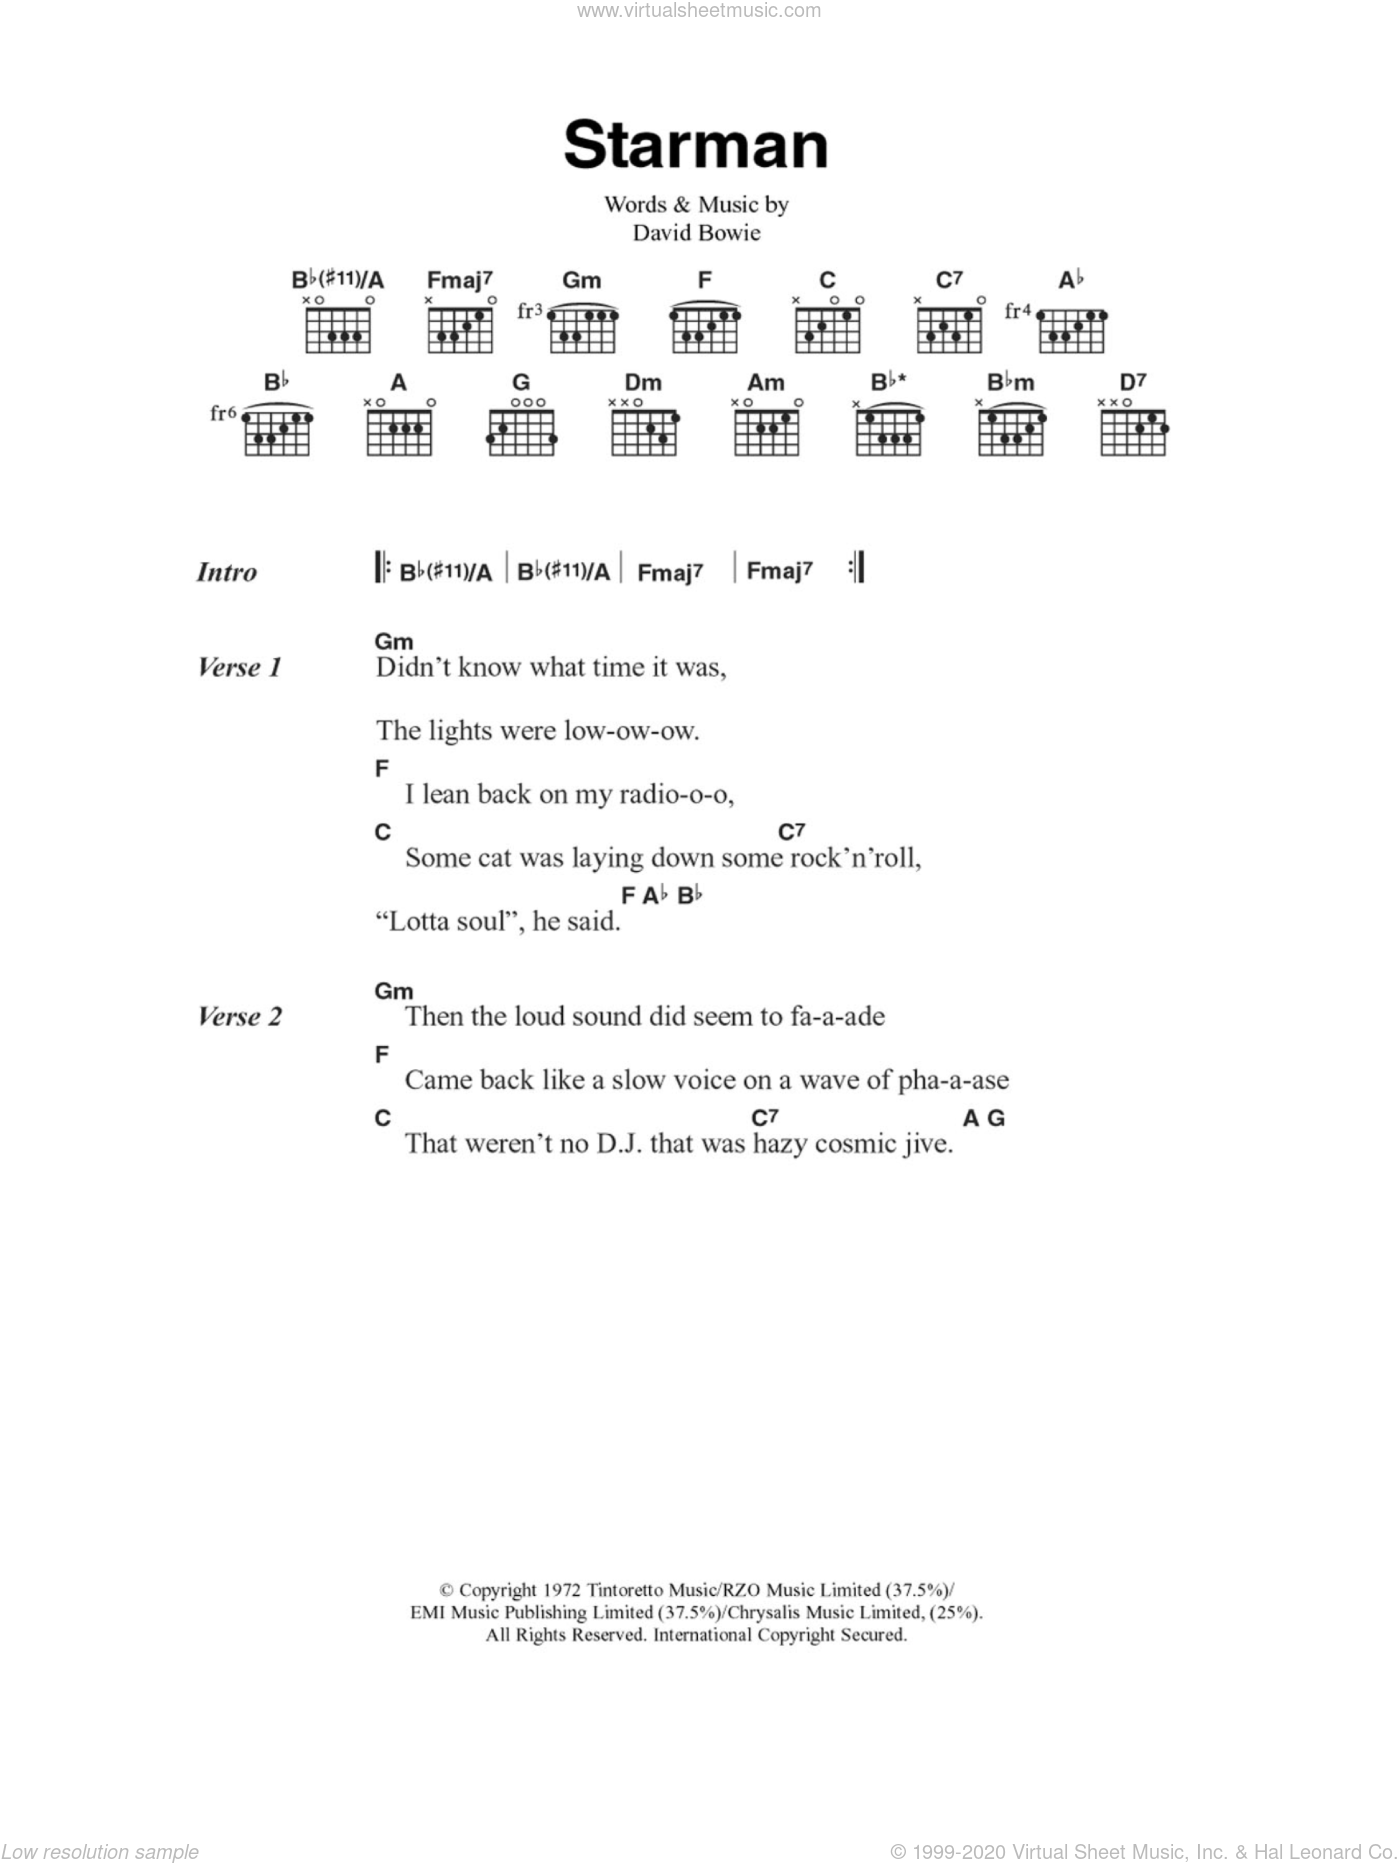 Starman sheet music for guitar (chords) by David Bowie. Score Image Preview.